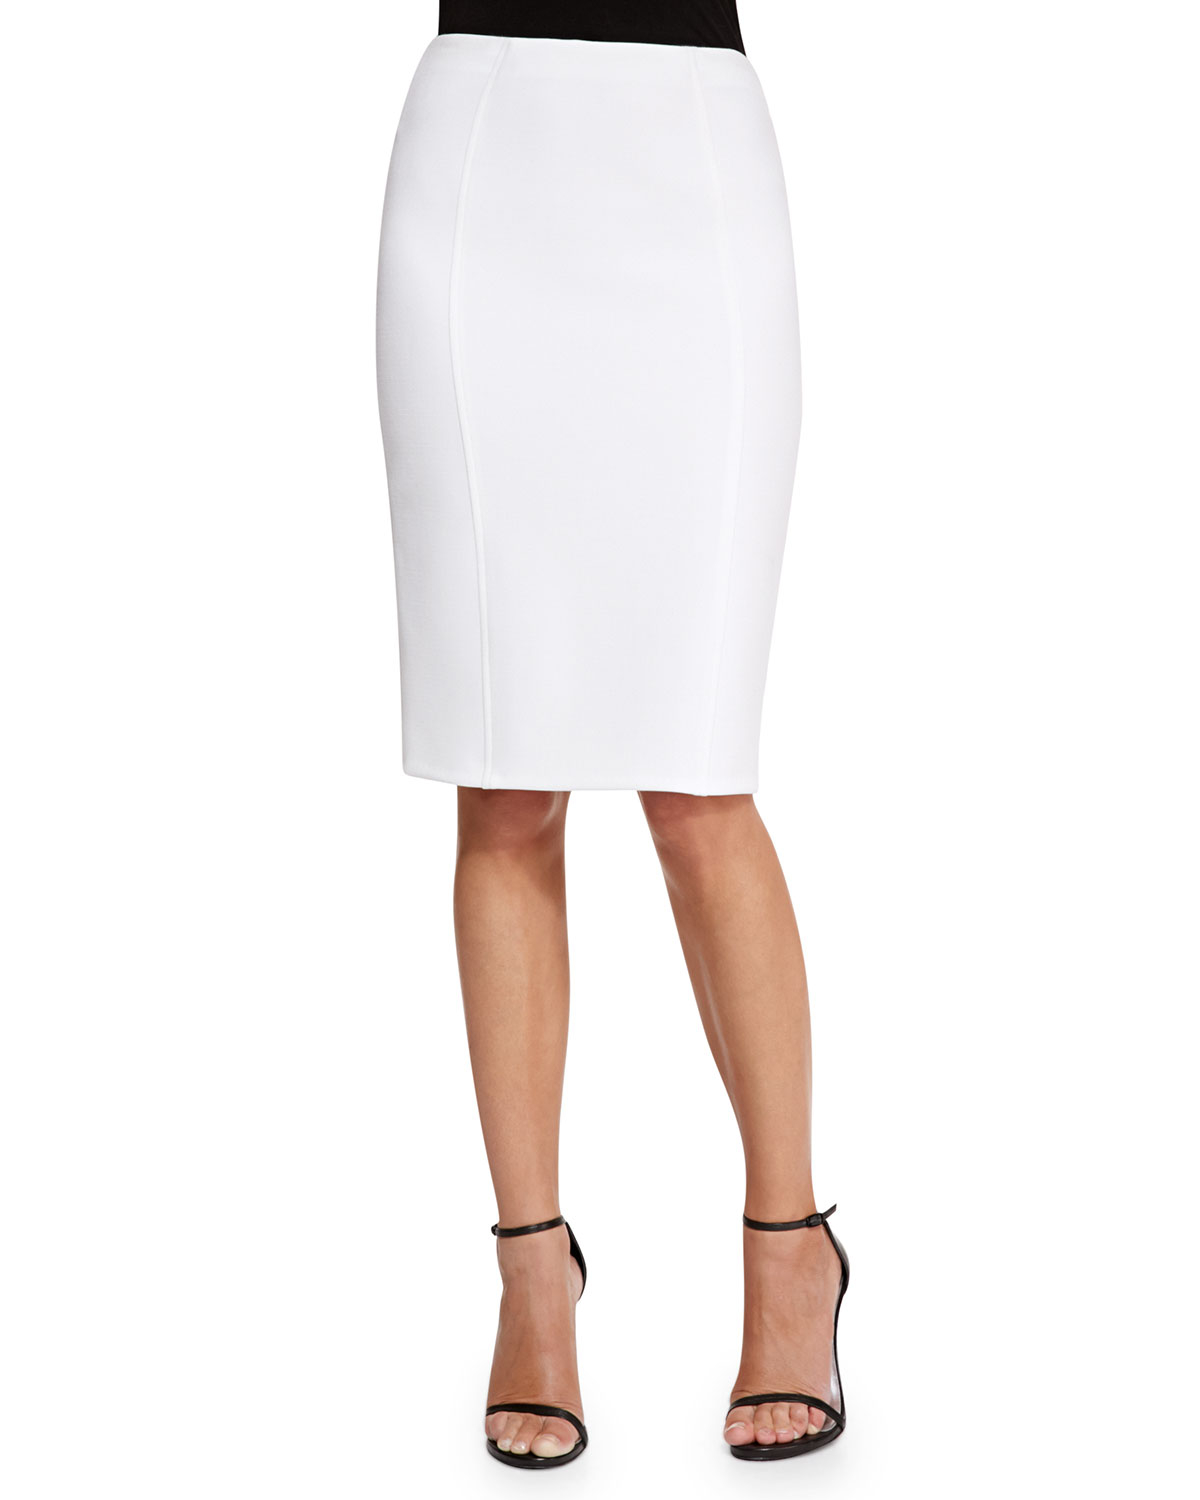 Flattering dresses and skirts, perfect-fitting pants, beautiful blouses, and more. Feminine. Modern. Thoughtful. Elegant. Shop Ann Taylor for a timelessly edited wardrobe.